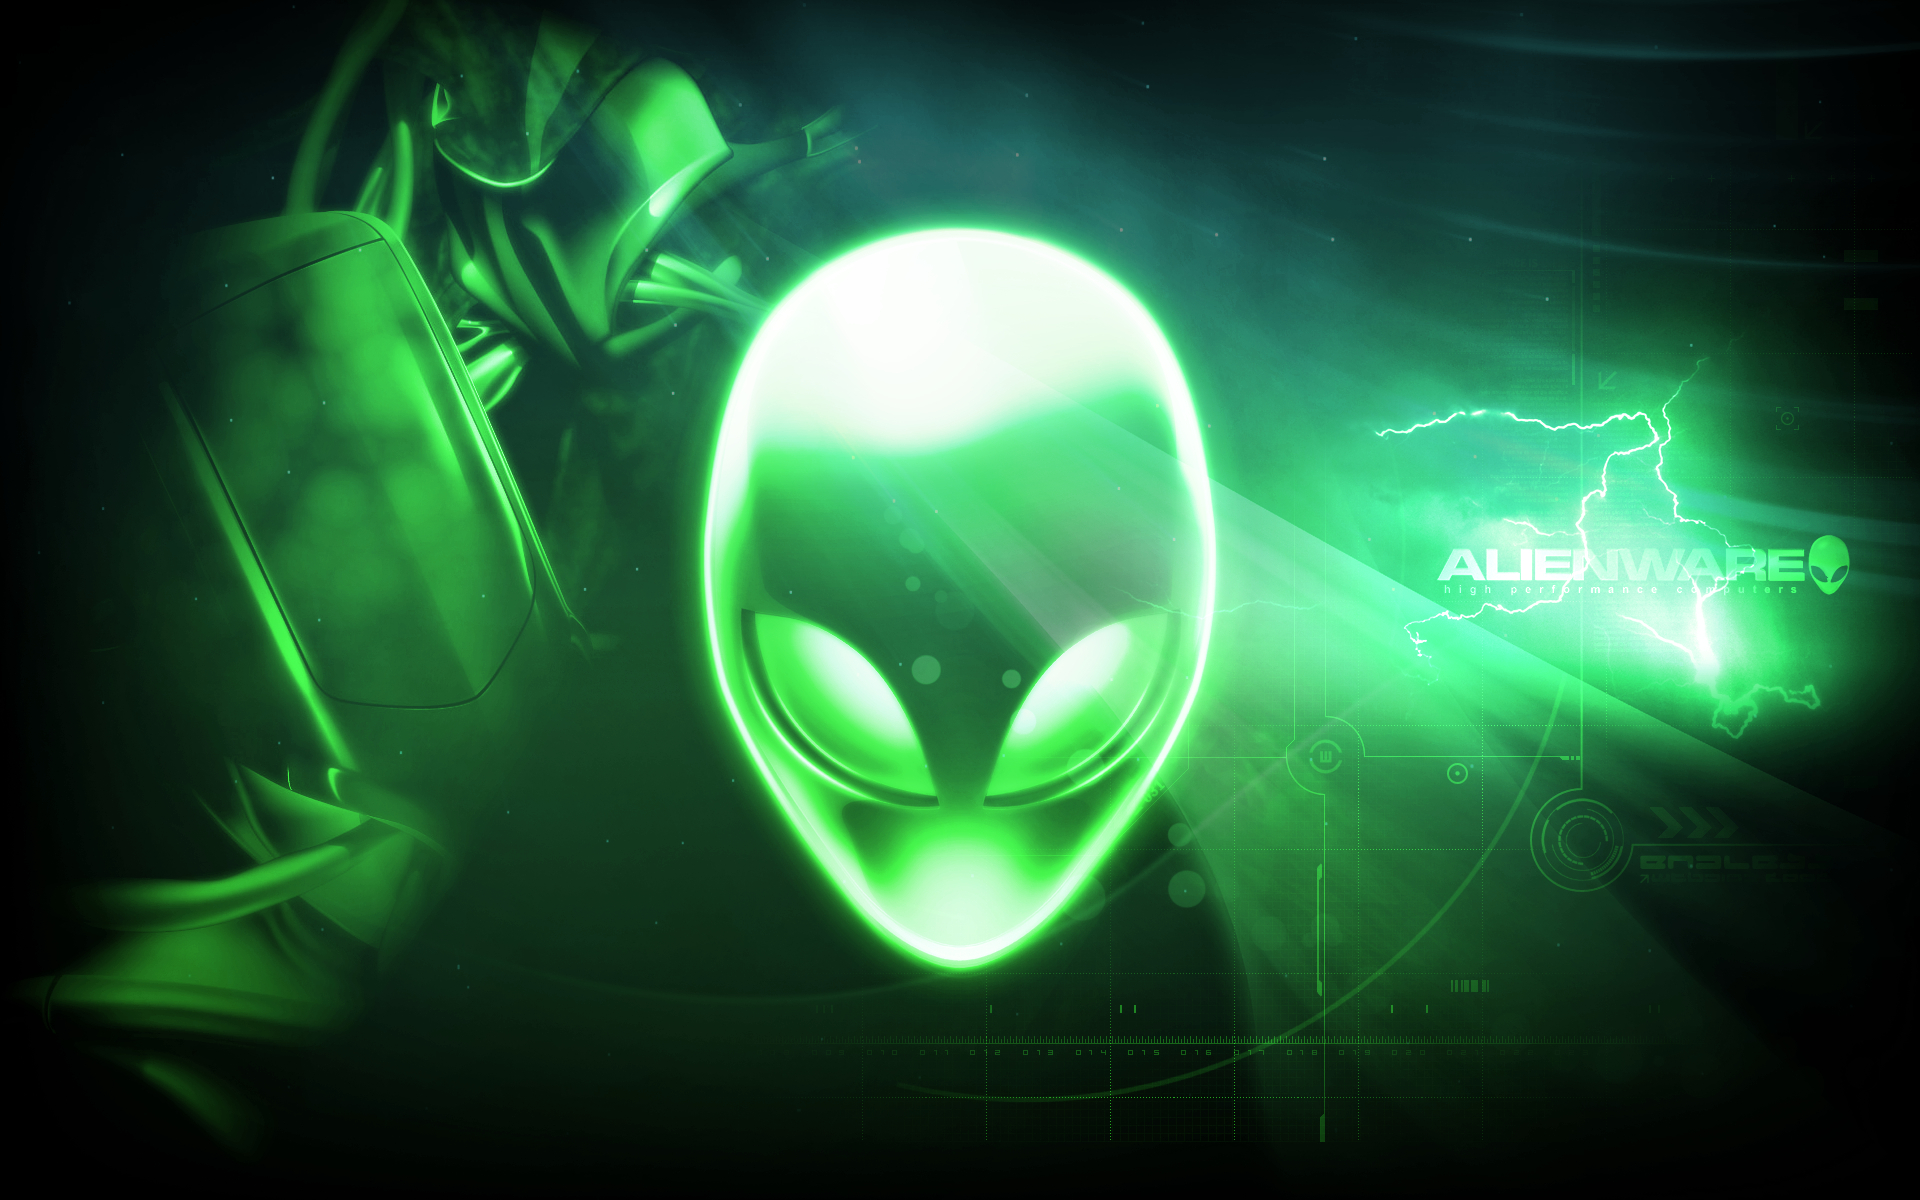 Promise Reloaded Alienware Desktop Green wallpapers HD   120791 1920x1200